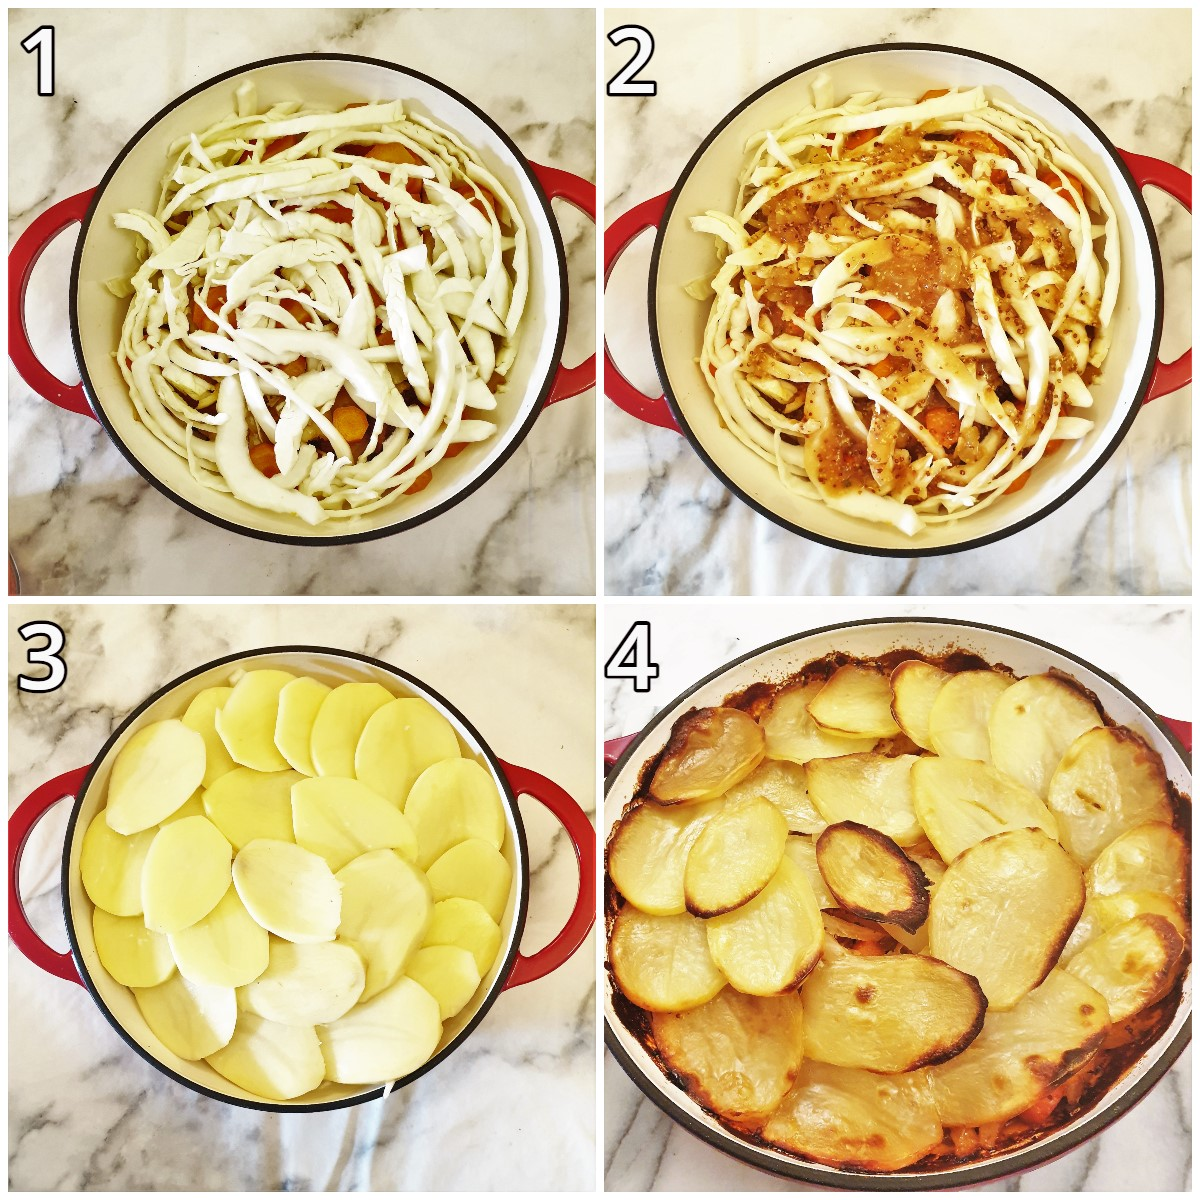 Steps for adding the cabbage and gravy and covering with sliced potatoes.